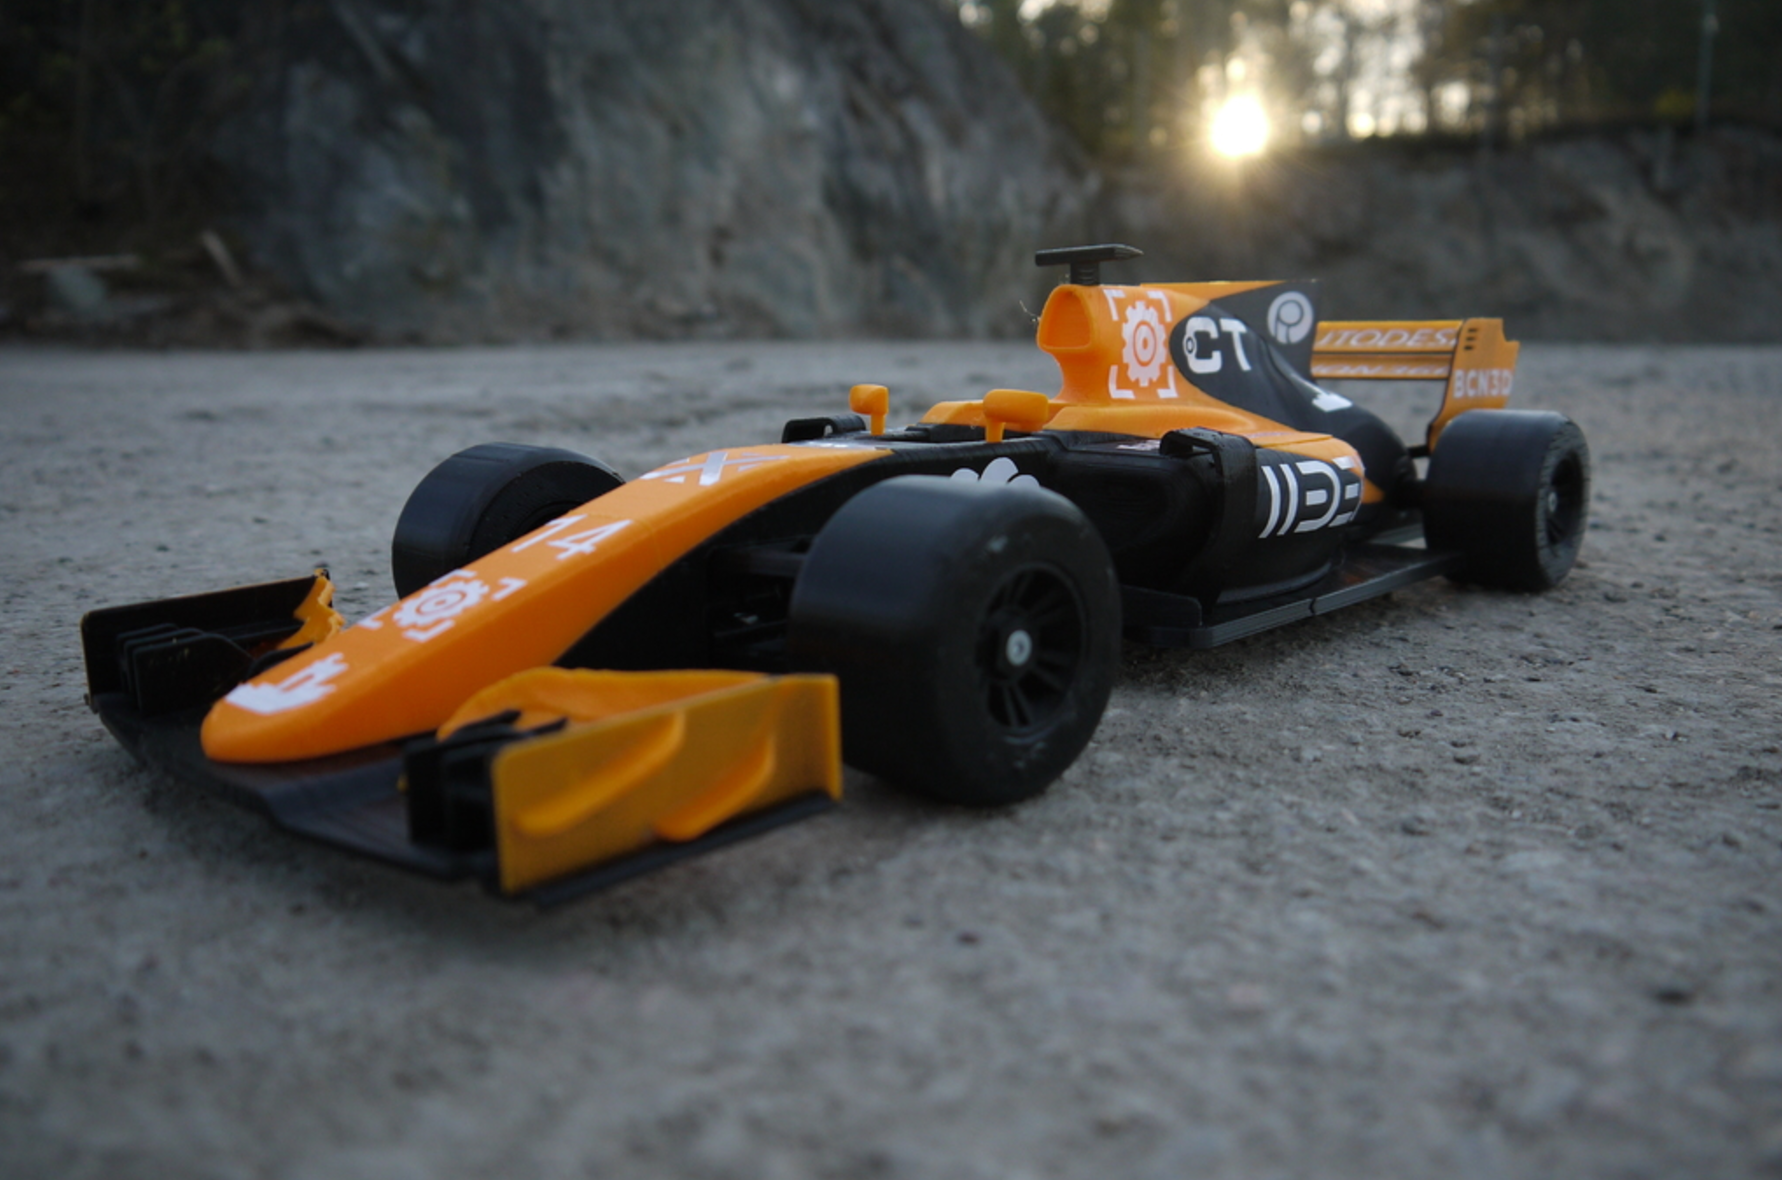 OpenRC F1 Dual Color McLaren Edition 3D Printing Free STL file Cults15.png Download free STL file OpenRC F1 Dual Color McLaren Edition • 3D printer model, DanielNoree